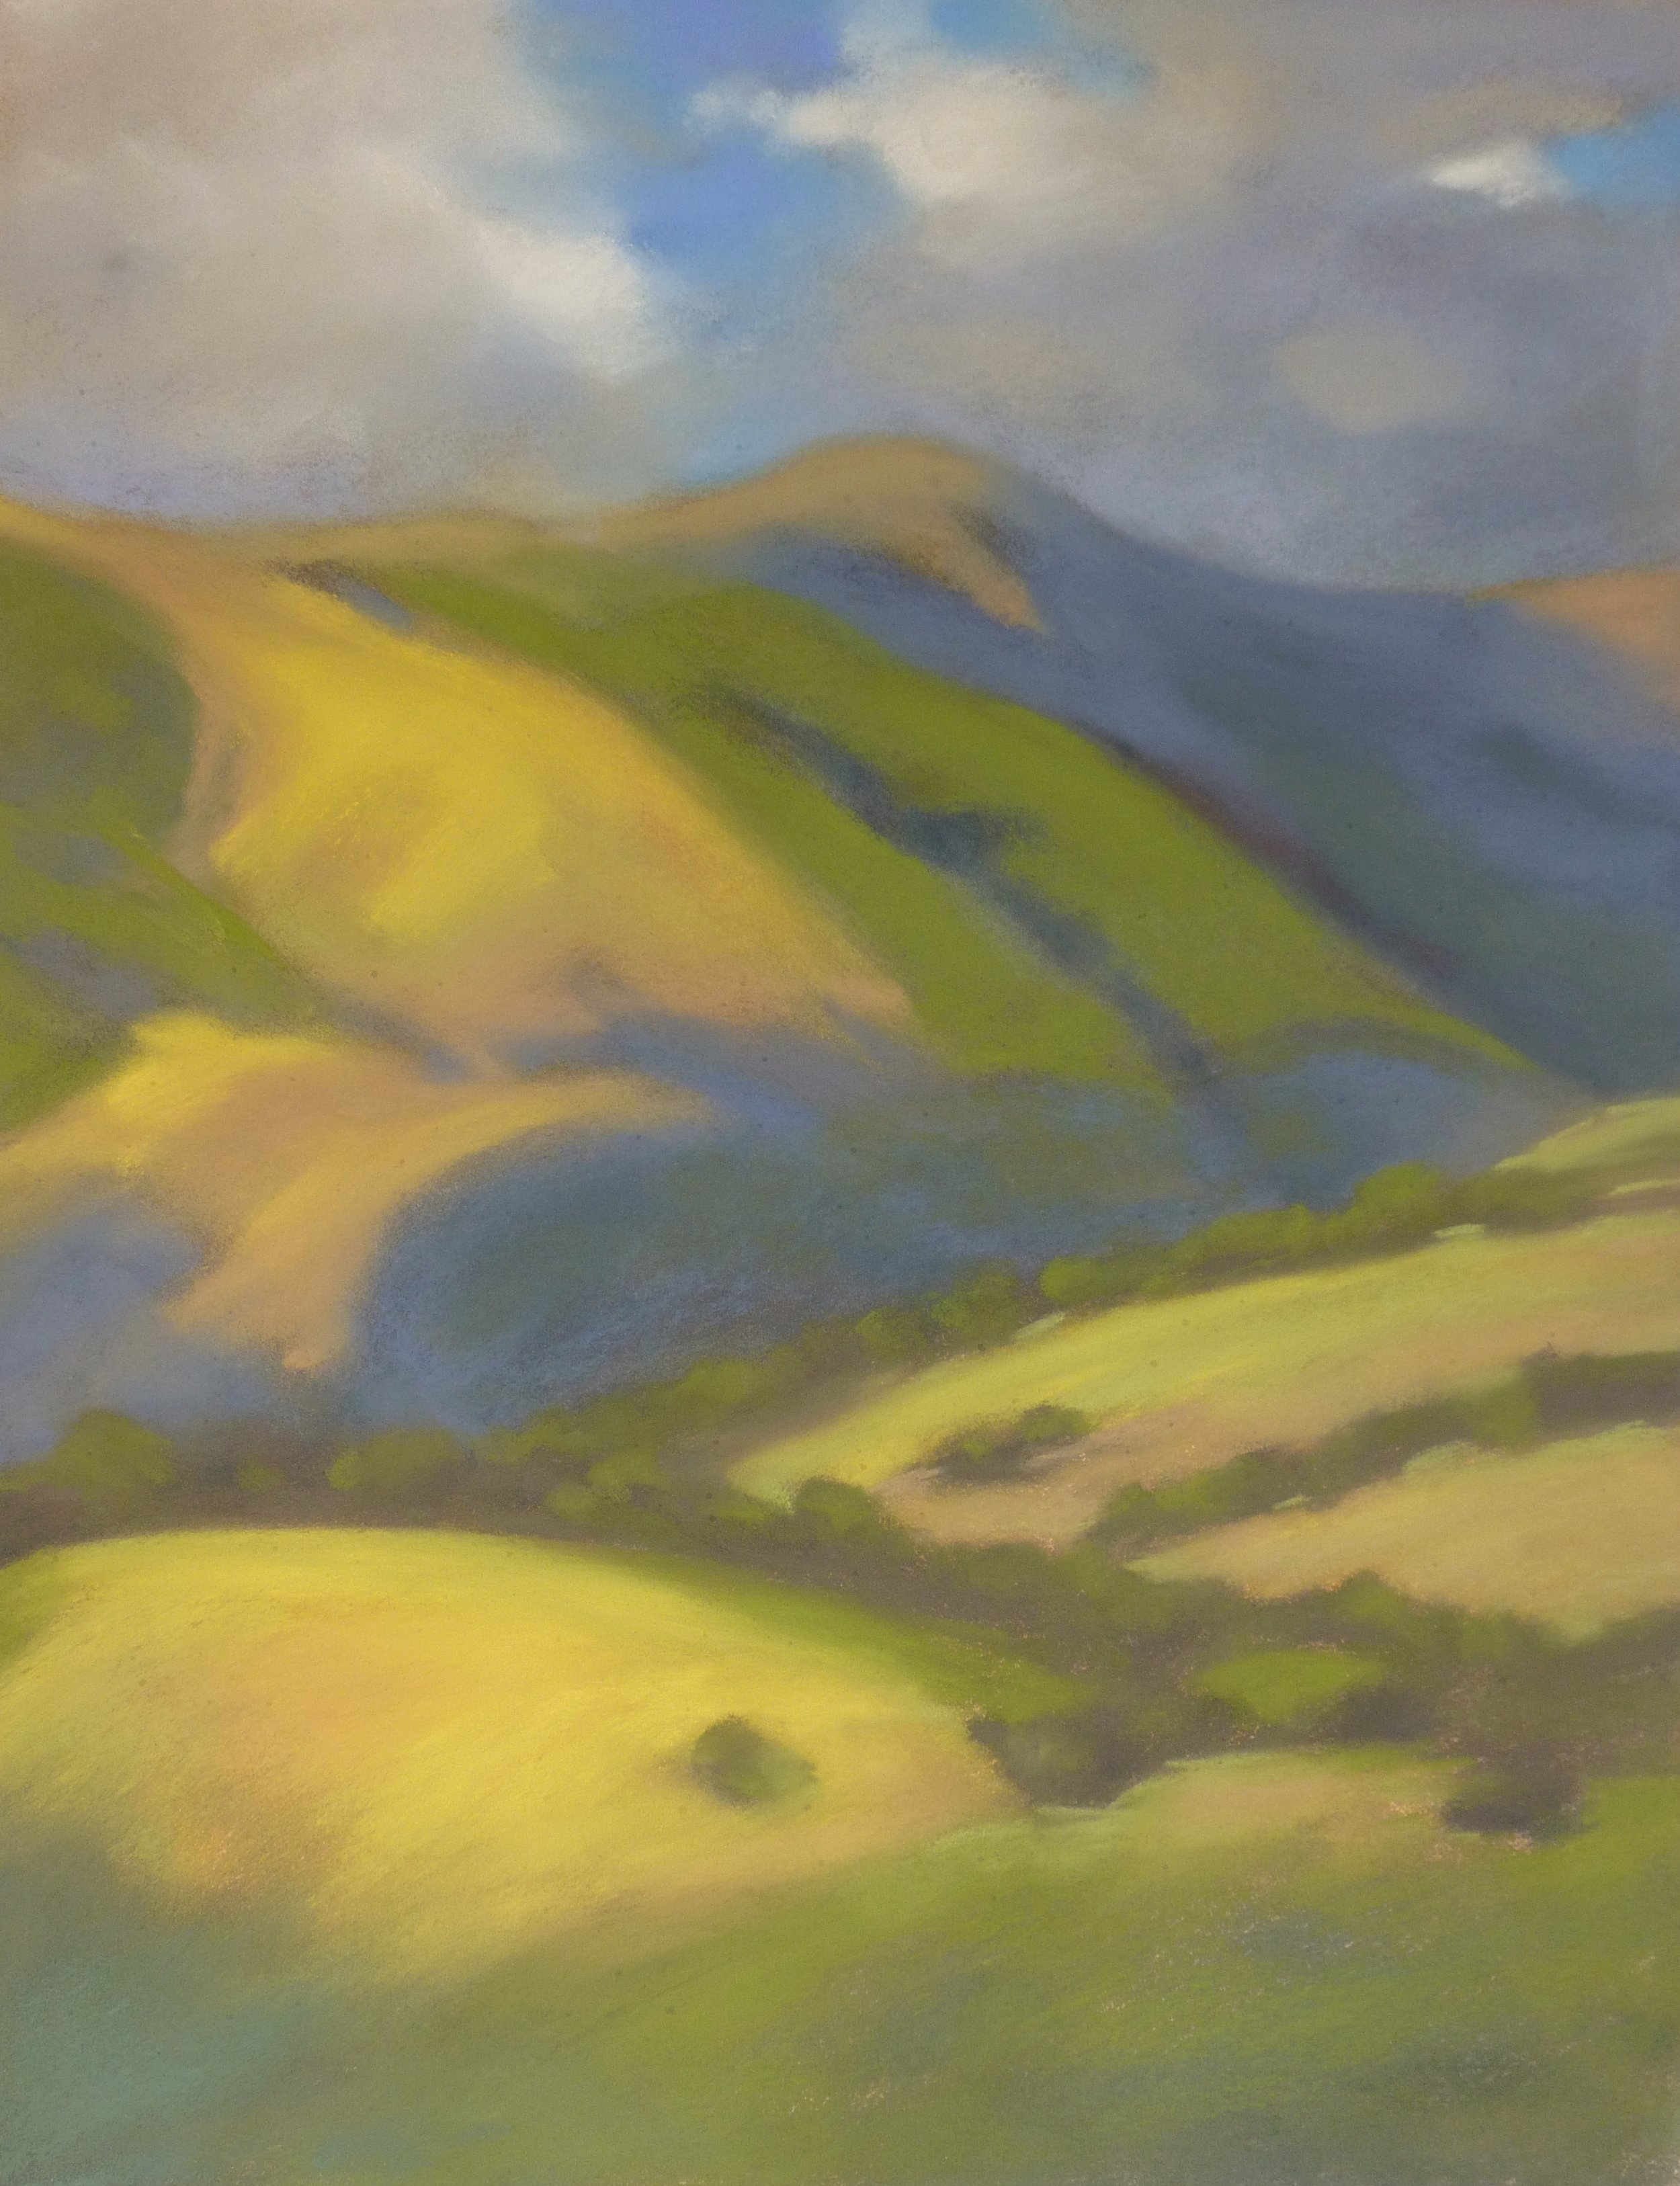 Changing Seasons   Pastel on Copper, 14 x 18 in   25.25 x 29.5 in framed   $1,800